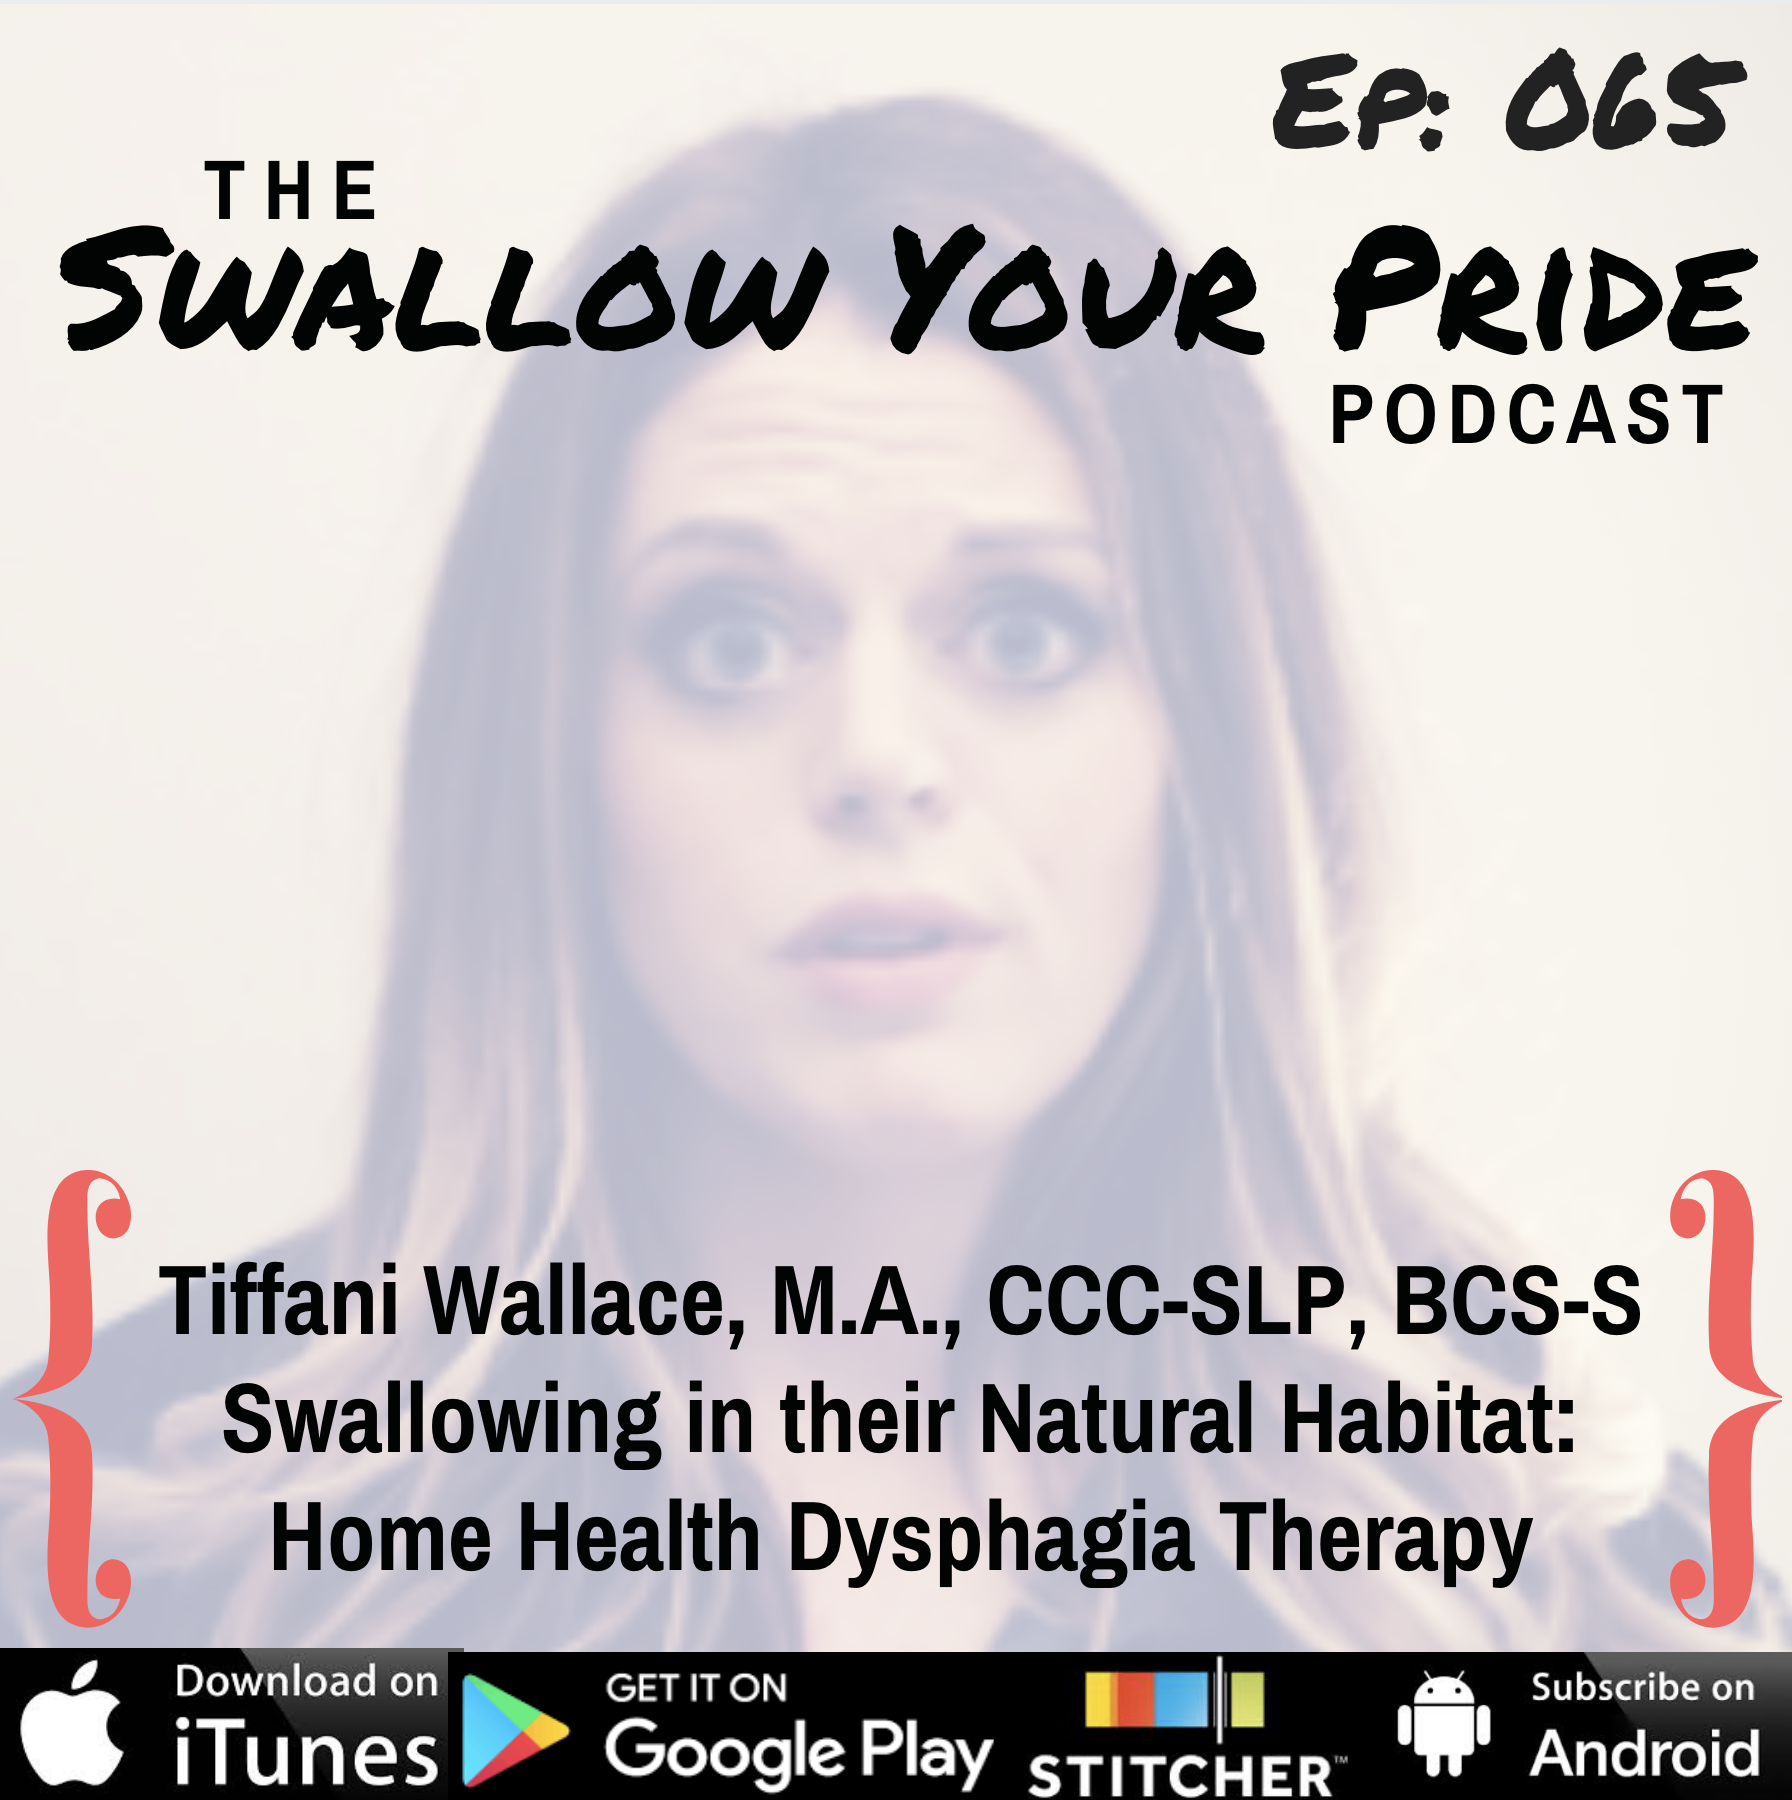 065 – Tiffani Wallace, M.A., CCC-SLP, BCS-S – Swallowing in their Natural Habitat: Home Health Dysphagia Therapy